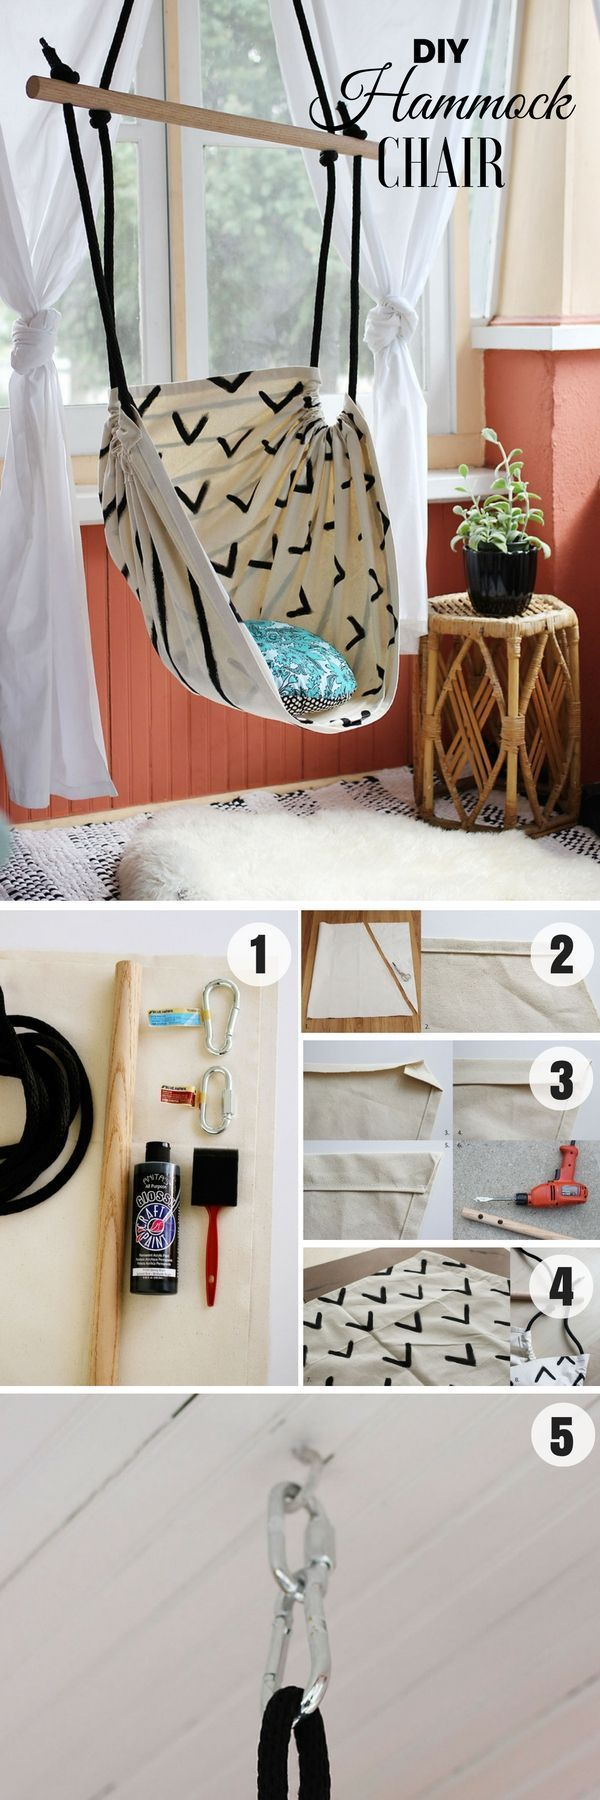 easy diy bedroom decorations. 16 Beautiful DIY Bedroom Decor Ideas That Will Inspire You Easy Diy Decorations Pinterest